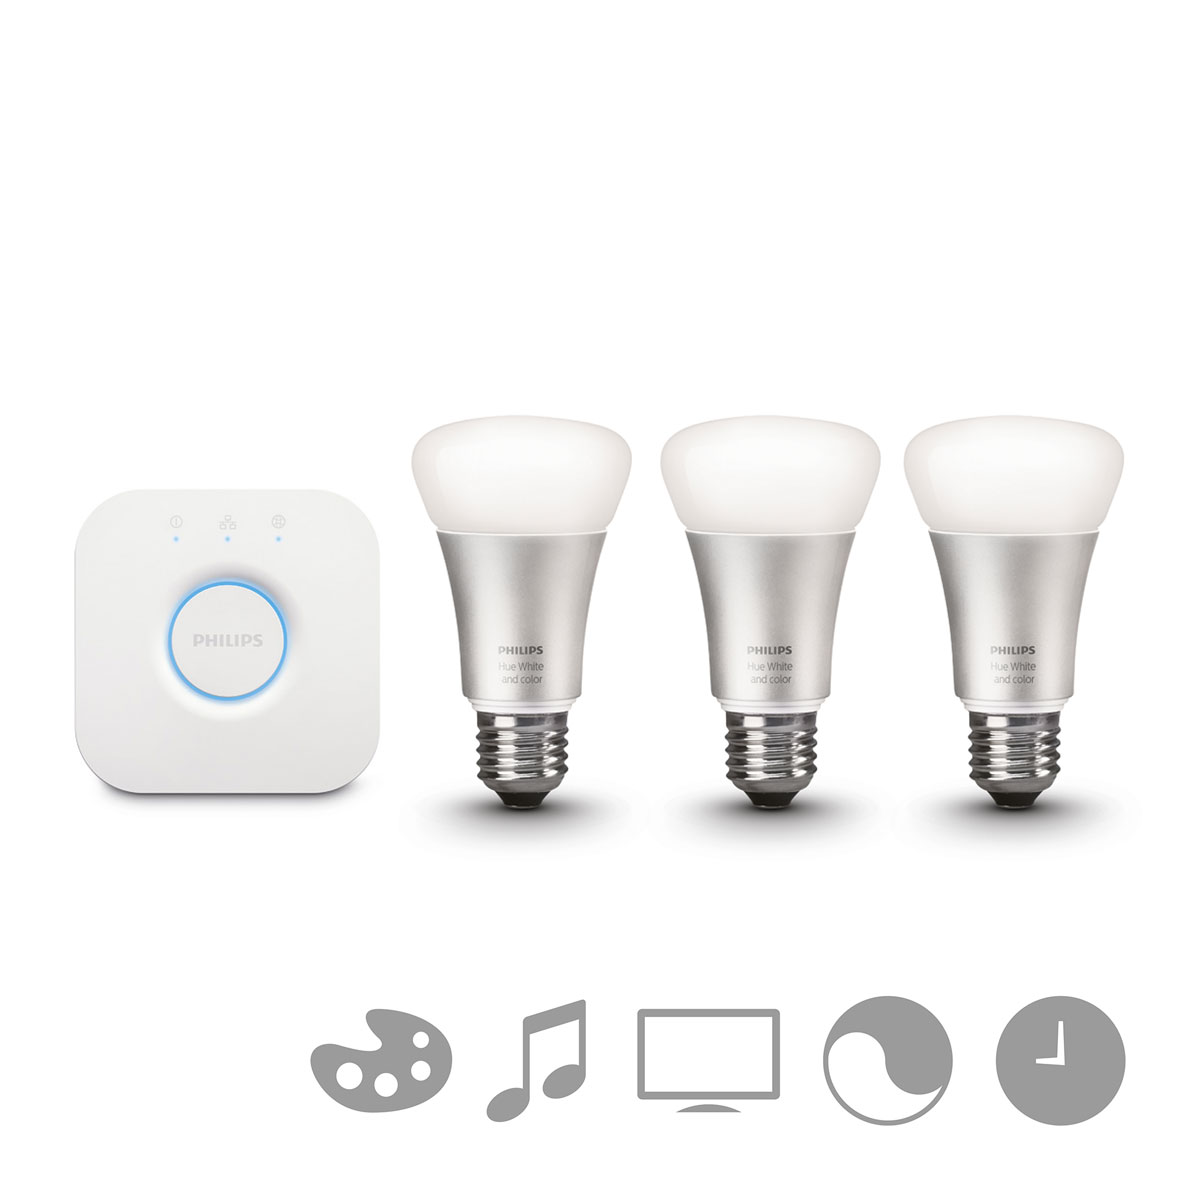 philips hue white and color starterset e27 a19 3 lampen met bridge 2 0. Black Bedroom Furniture Sets. Home Design Ideas